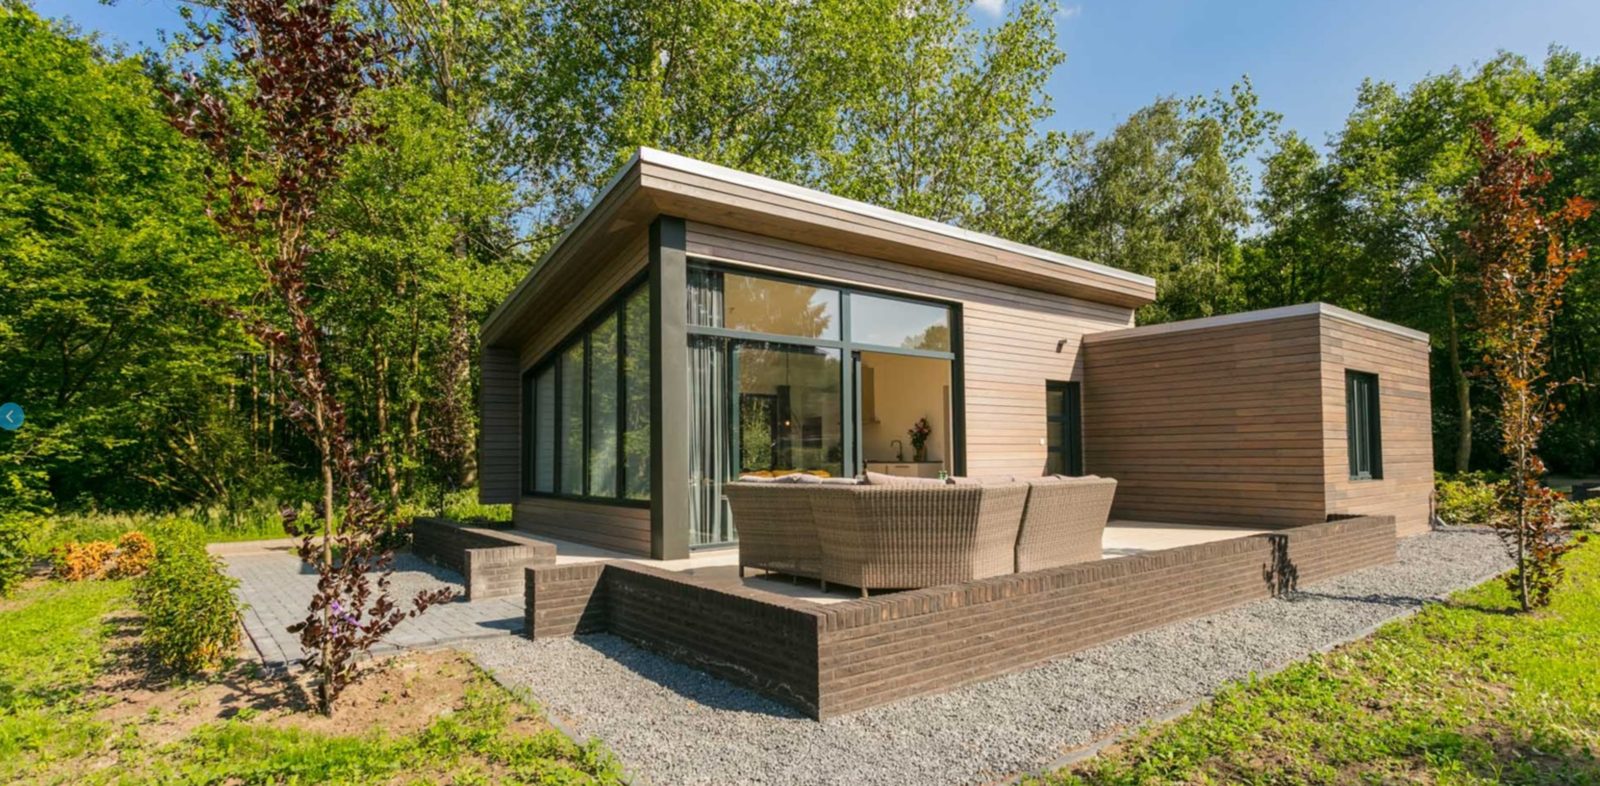 Nature house in Twente